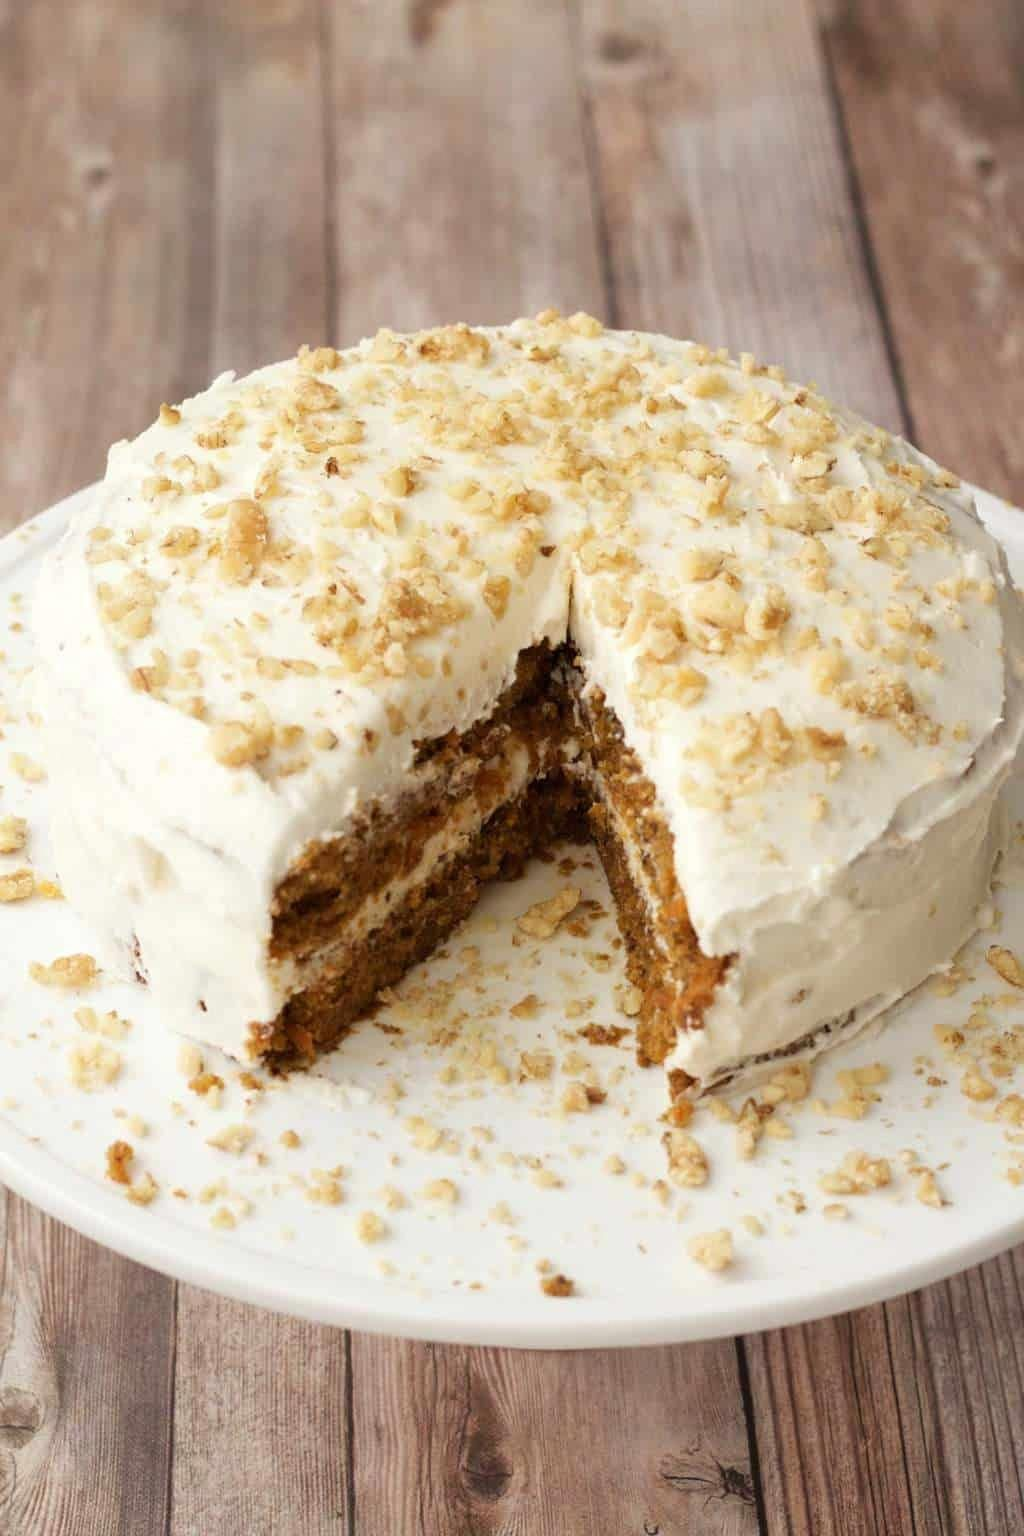 Moist, rich vegan carrot cake with a wholesome flavor and gorgeous color. Topped with lemon buttercream frosting and crushed walnuts. | lovingitvegan.com #carrotcake #lemonbuttercream